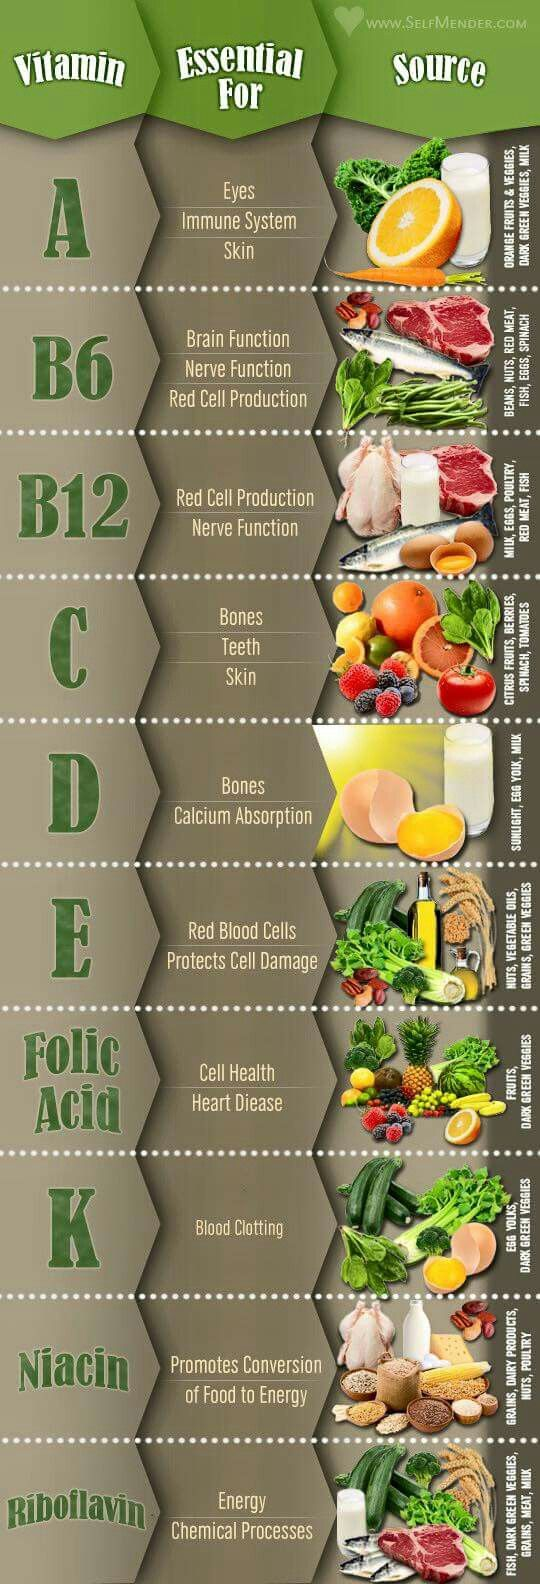 Use this chart to help you eat all the essential vitamins. Kale full of vitamin A, helps with skin and eyes. The folic acid in pineapple will promote the health of your cells. Read the chart. To read more health tips go to http://internationalhealthgroup.com/